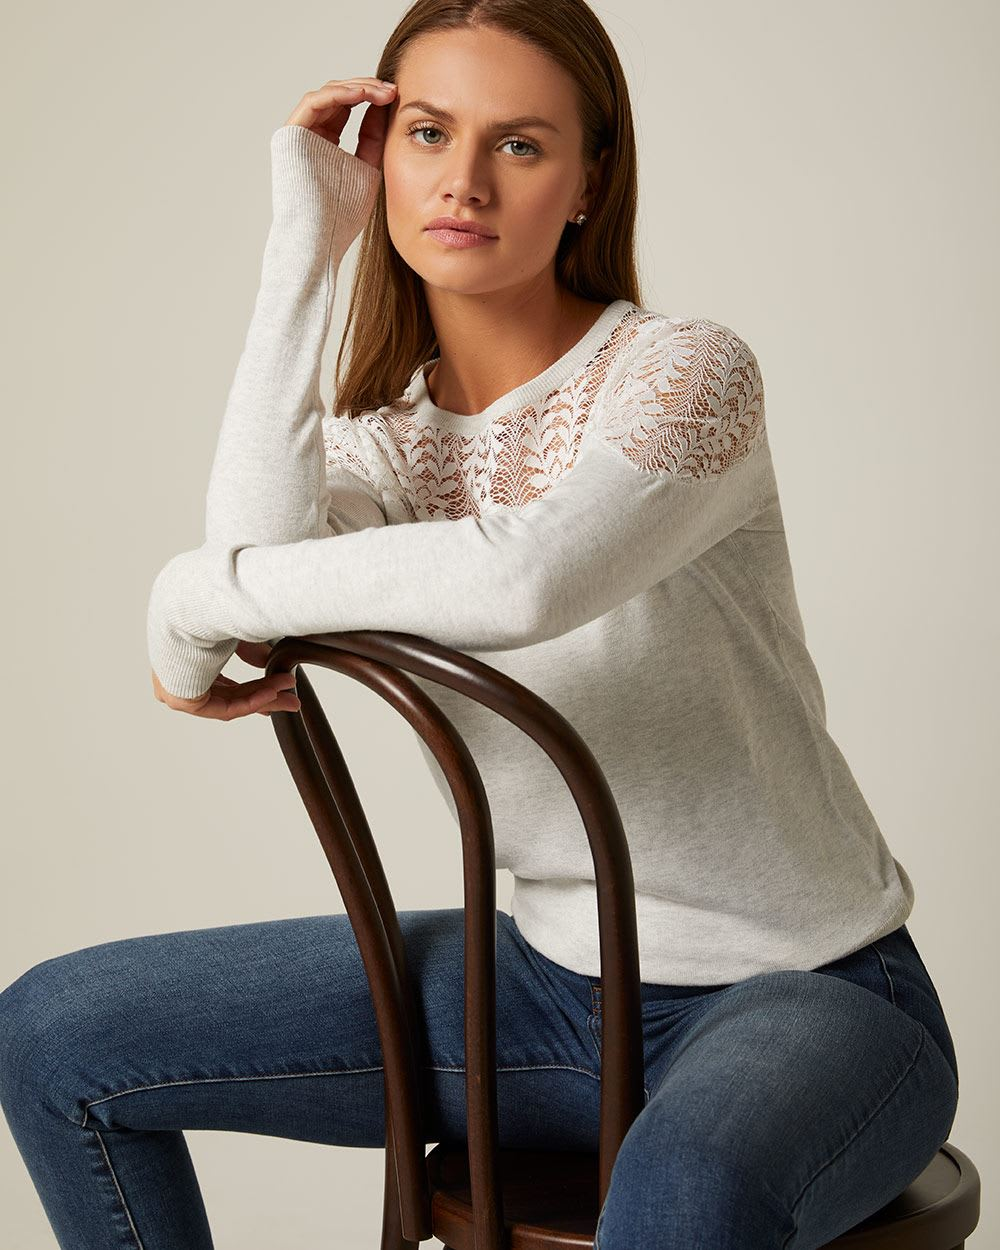 Lace-trimmed shoulder sweater